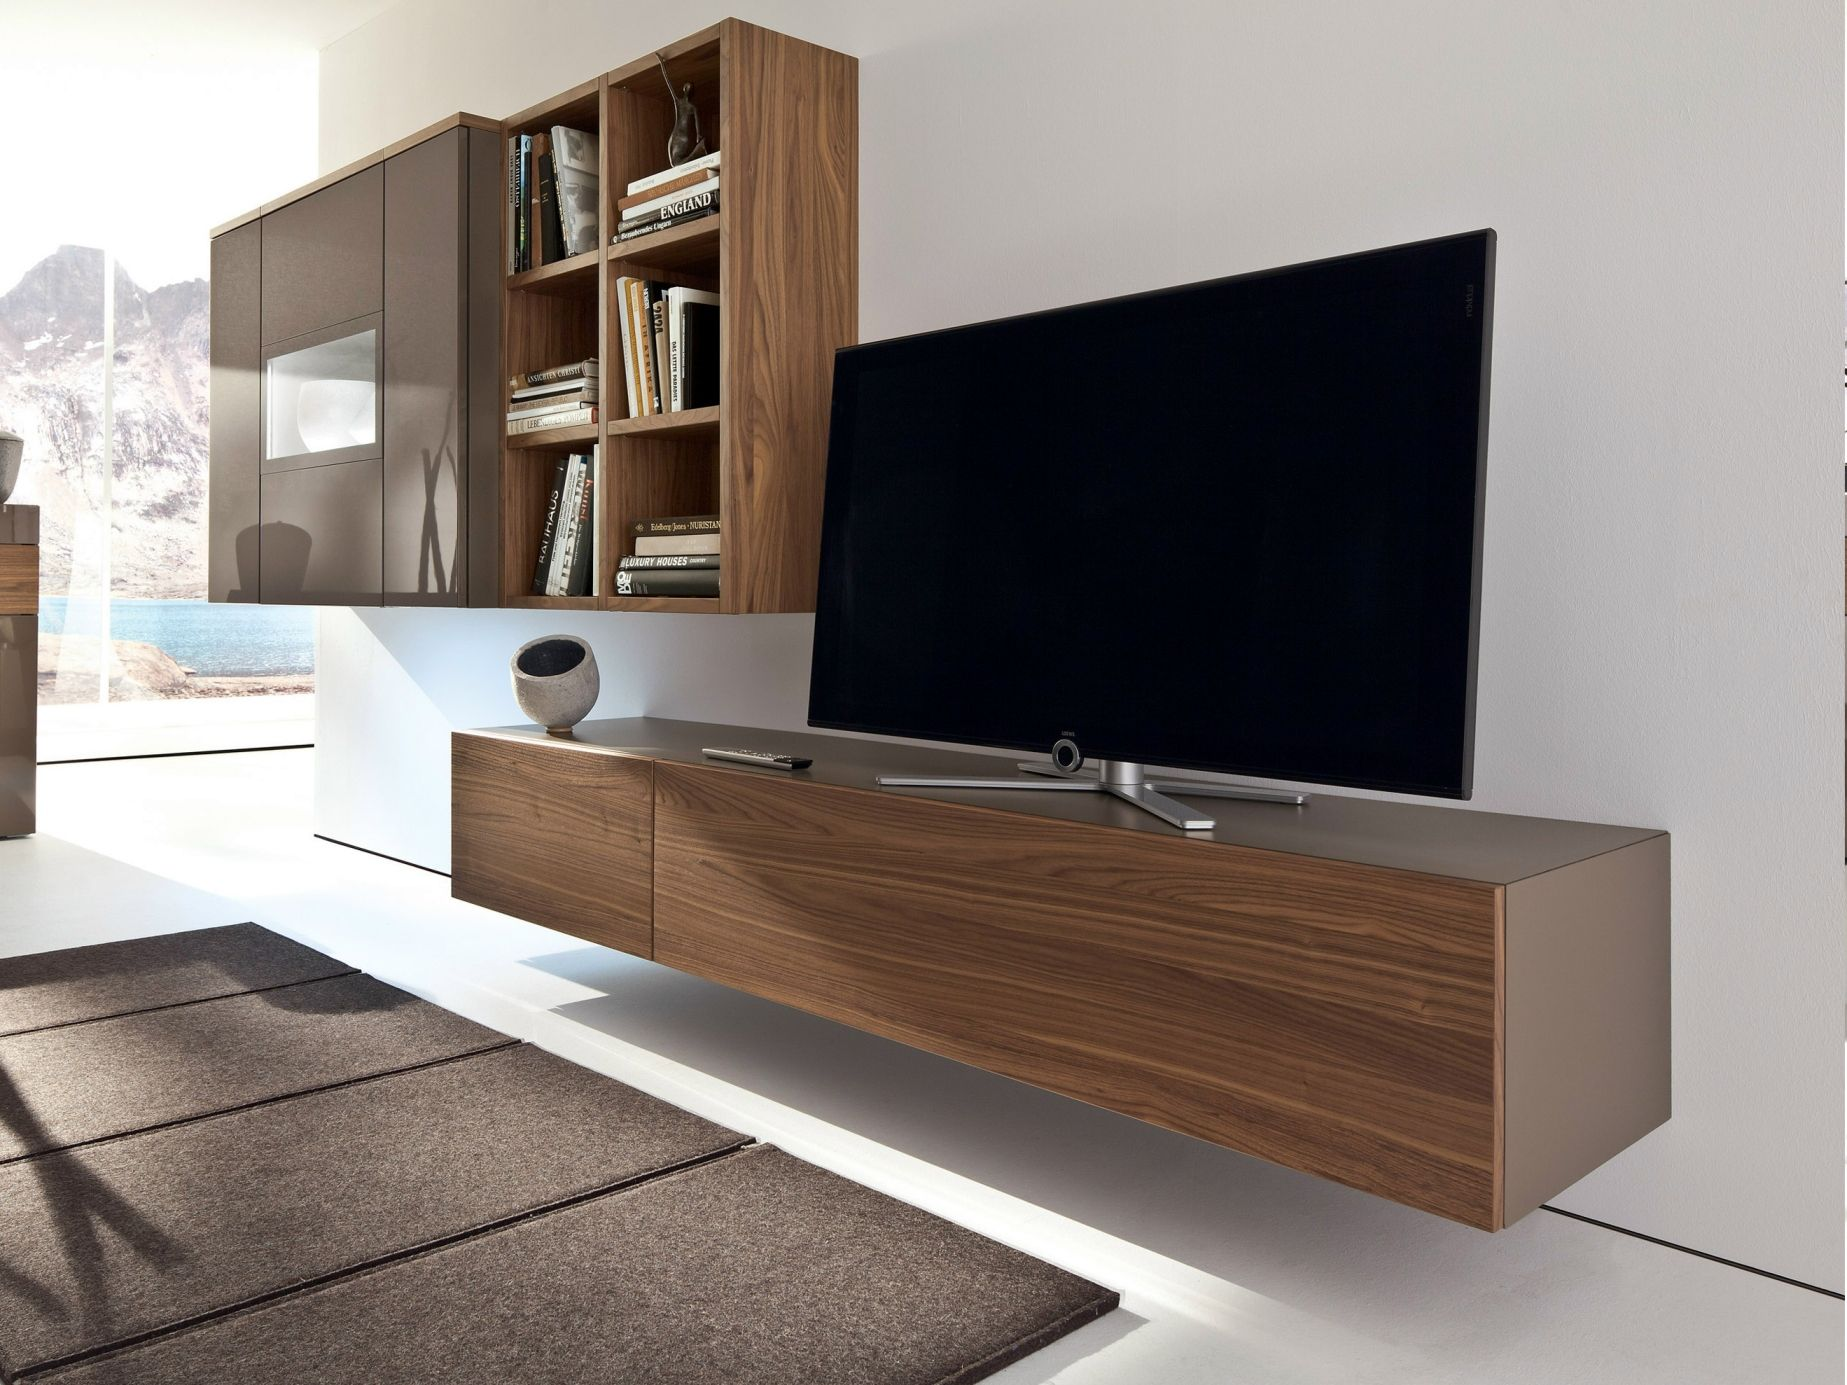 Brown Laminated Wooden Simple Wall Mounted Tv Cabinet Also Brown